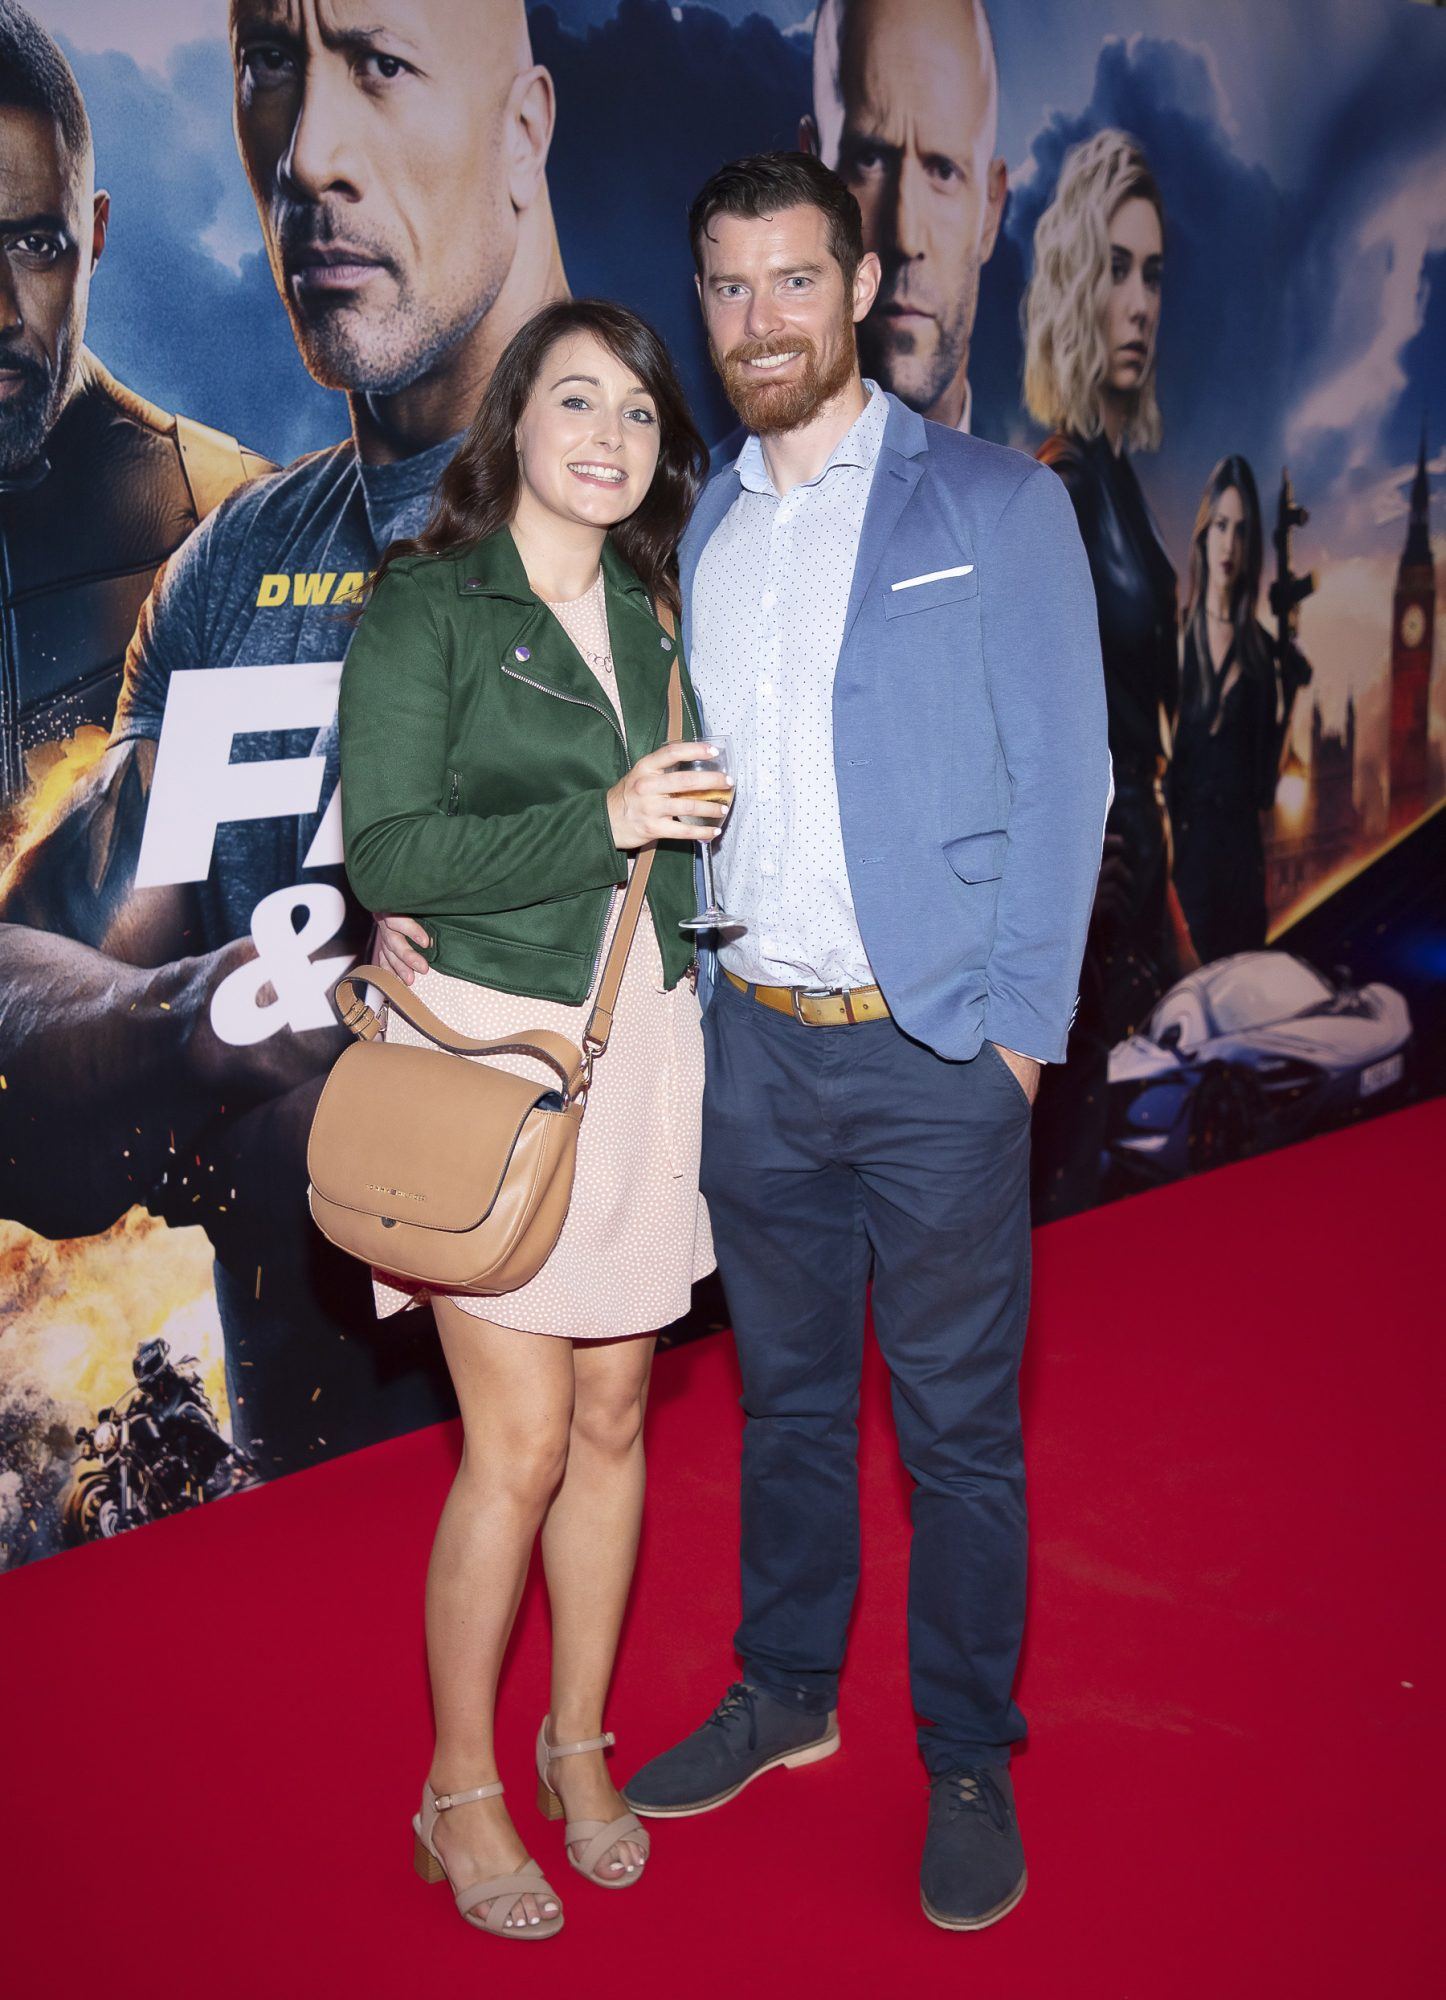 Ciara & Daniel Fagan pictured at a special preview screening of Fast & Furious Presents: Hobbs & Shaw. Photo: Anthony Woods